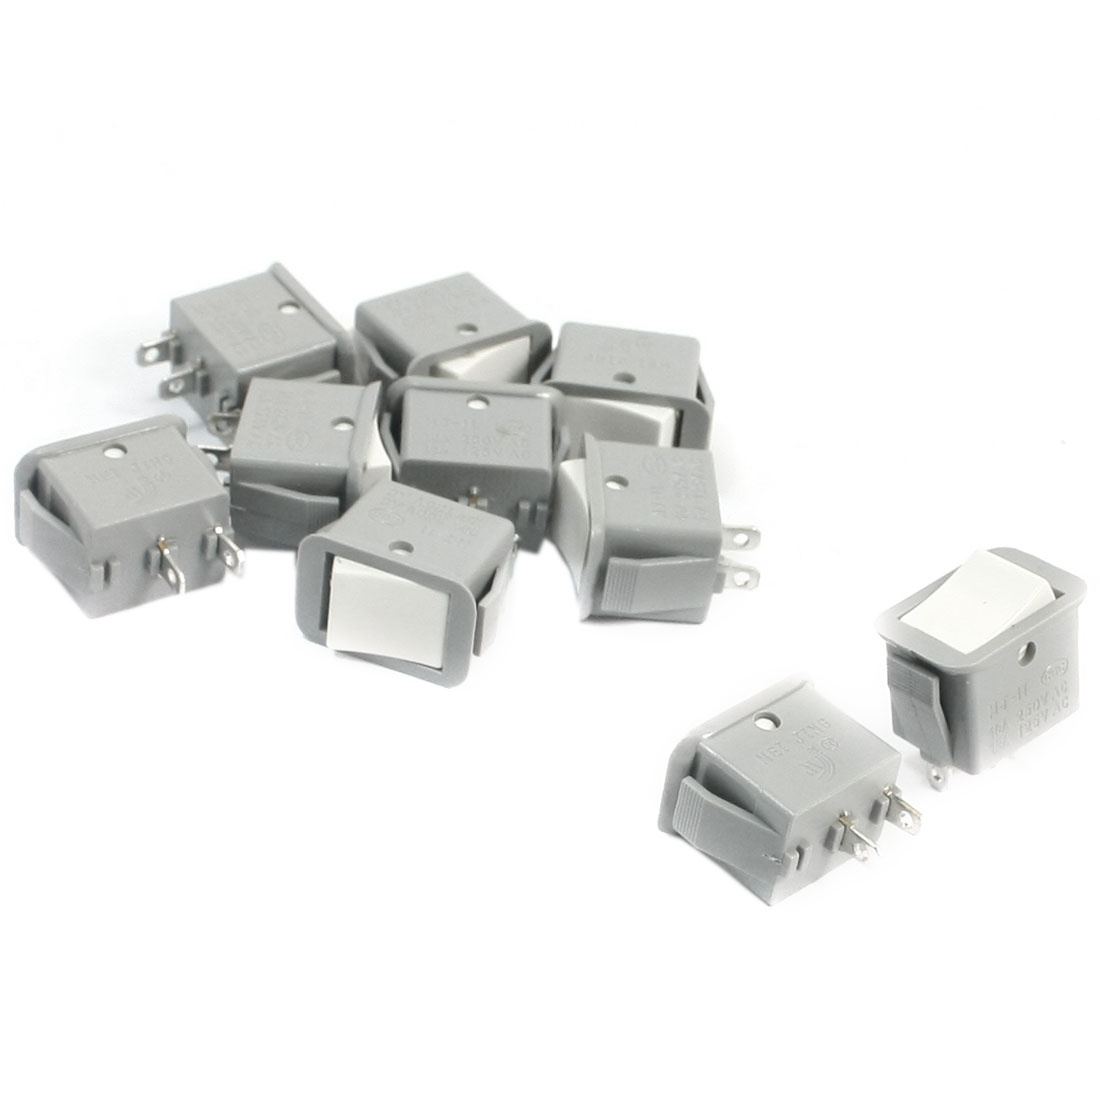 10pcs Gray Locking SPST 2 Positions Rocker Switch AC250V/10A 125V/13A